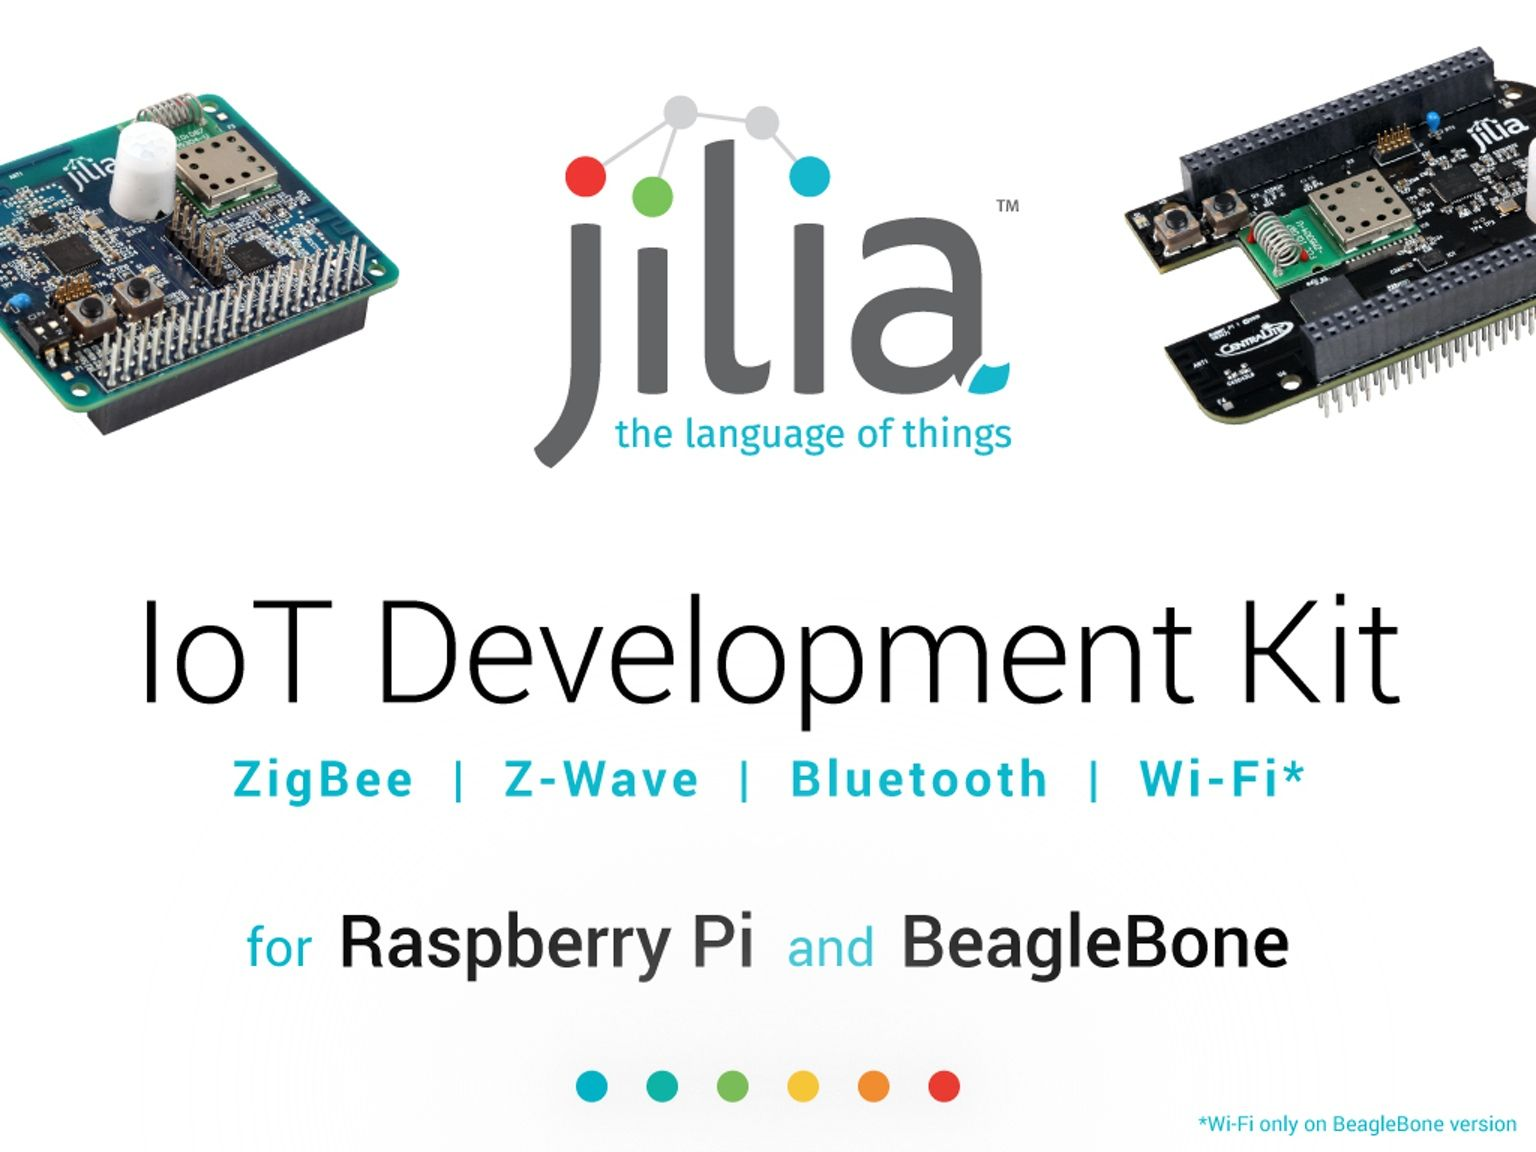 Raspberry Pi- and BeagleBone-compatible add-on boards and